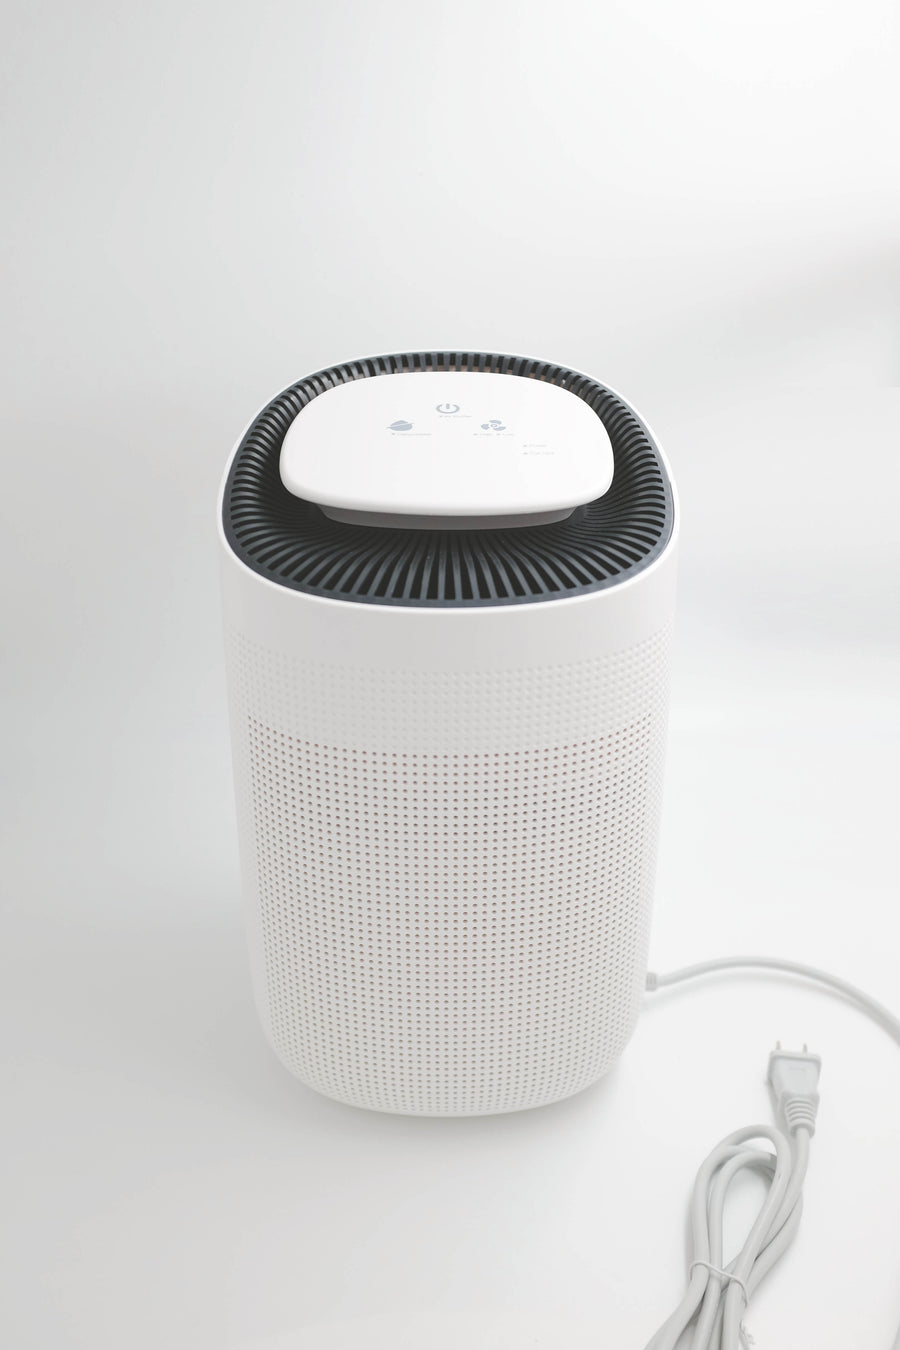 JS VANGUARD 2.0 The 2-in-1 Air Purifier HEPA and Dehumidifier